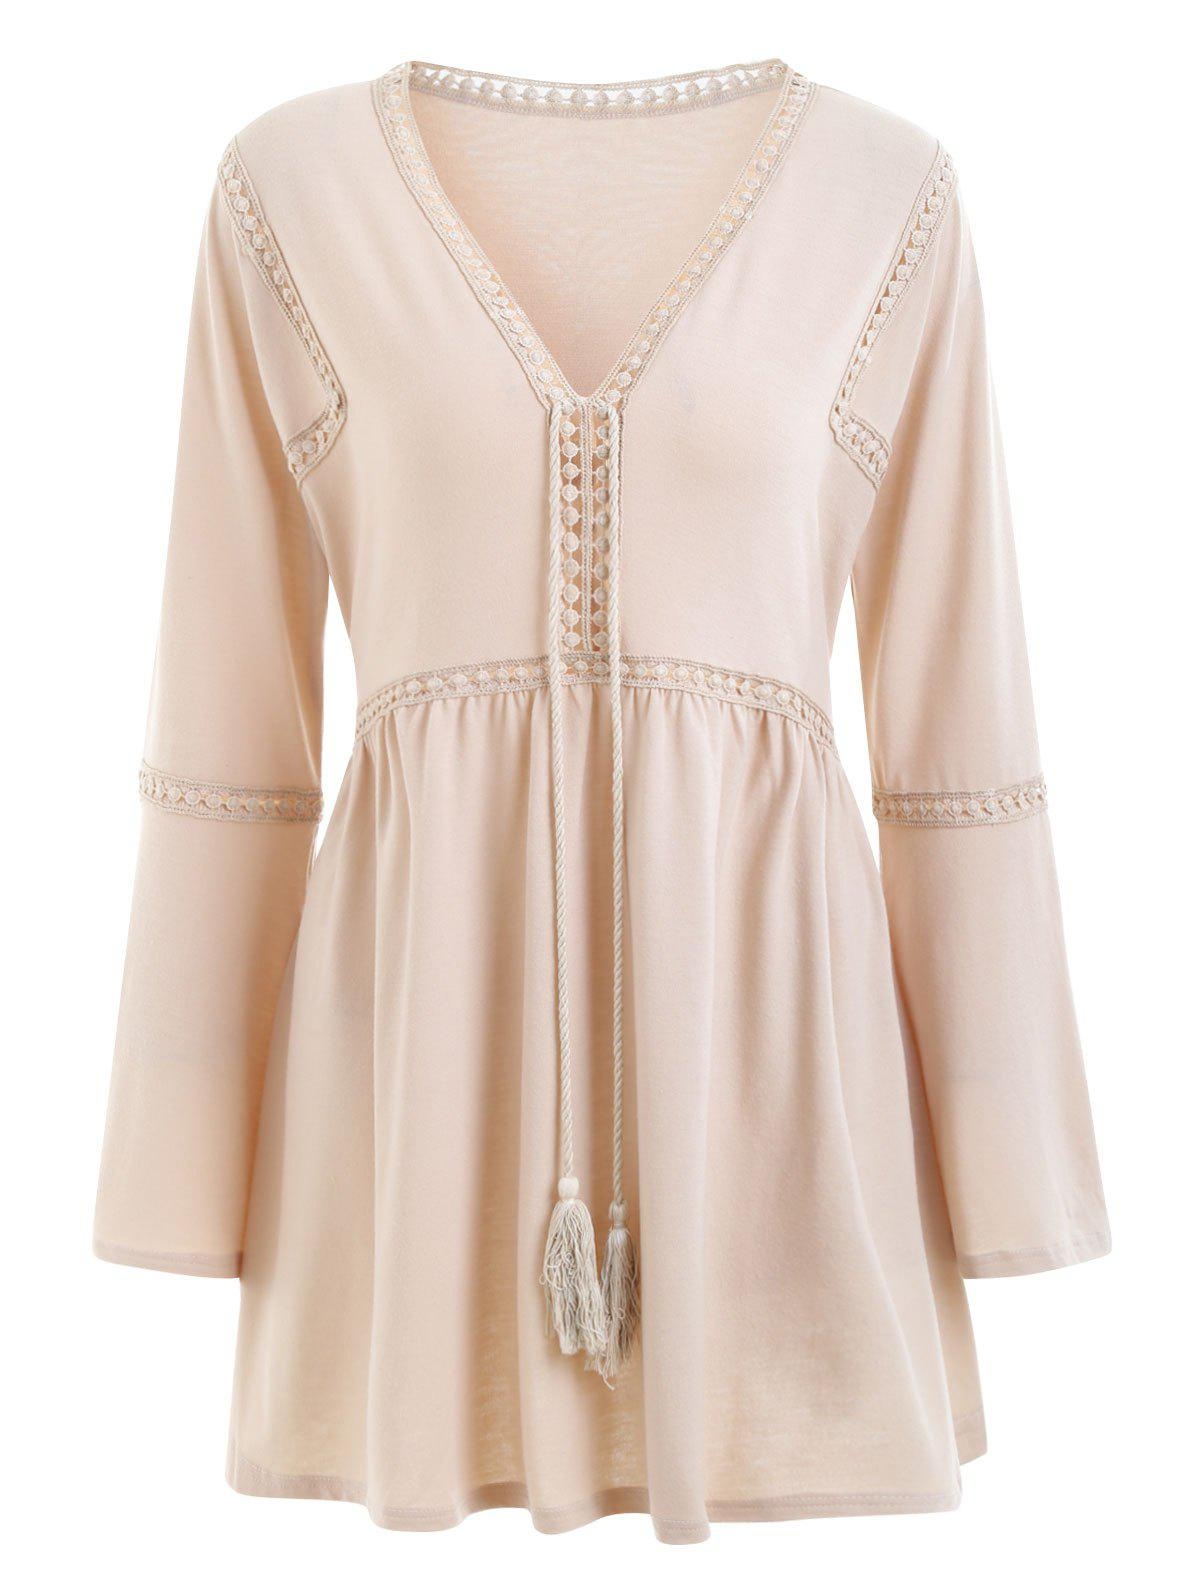 Plus Size Crochet Embellished V Neck Peasant DressWOMEN<br><br>Size: 5XL; Color: YELLOWISH PINK; Style: Casual; Material: Polyester; Silhouette: A-Line; Dresses Length: Mini; Neckline: V-Neck; Sleeve Length: Long Sleeves; Embellishment: Cut Out,Hollow Out; Pattern Type: Solid Color; With Belt: No; Season: Fall,Winter; Weight: 0.3800kg; Package Contents: 1 x Dress;